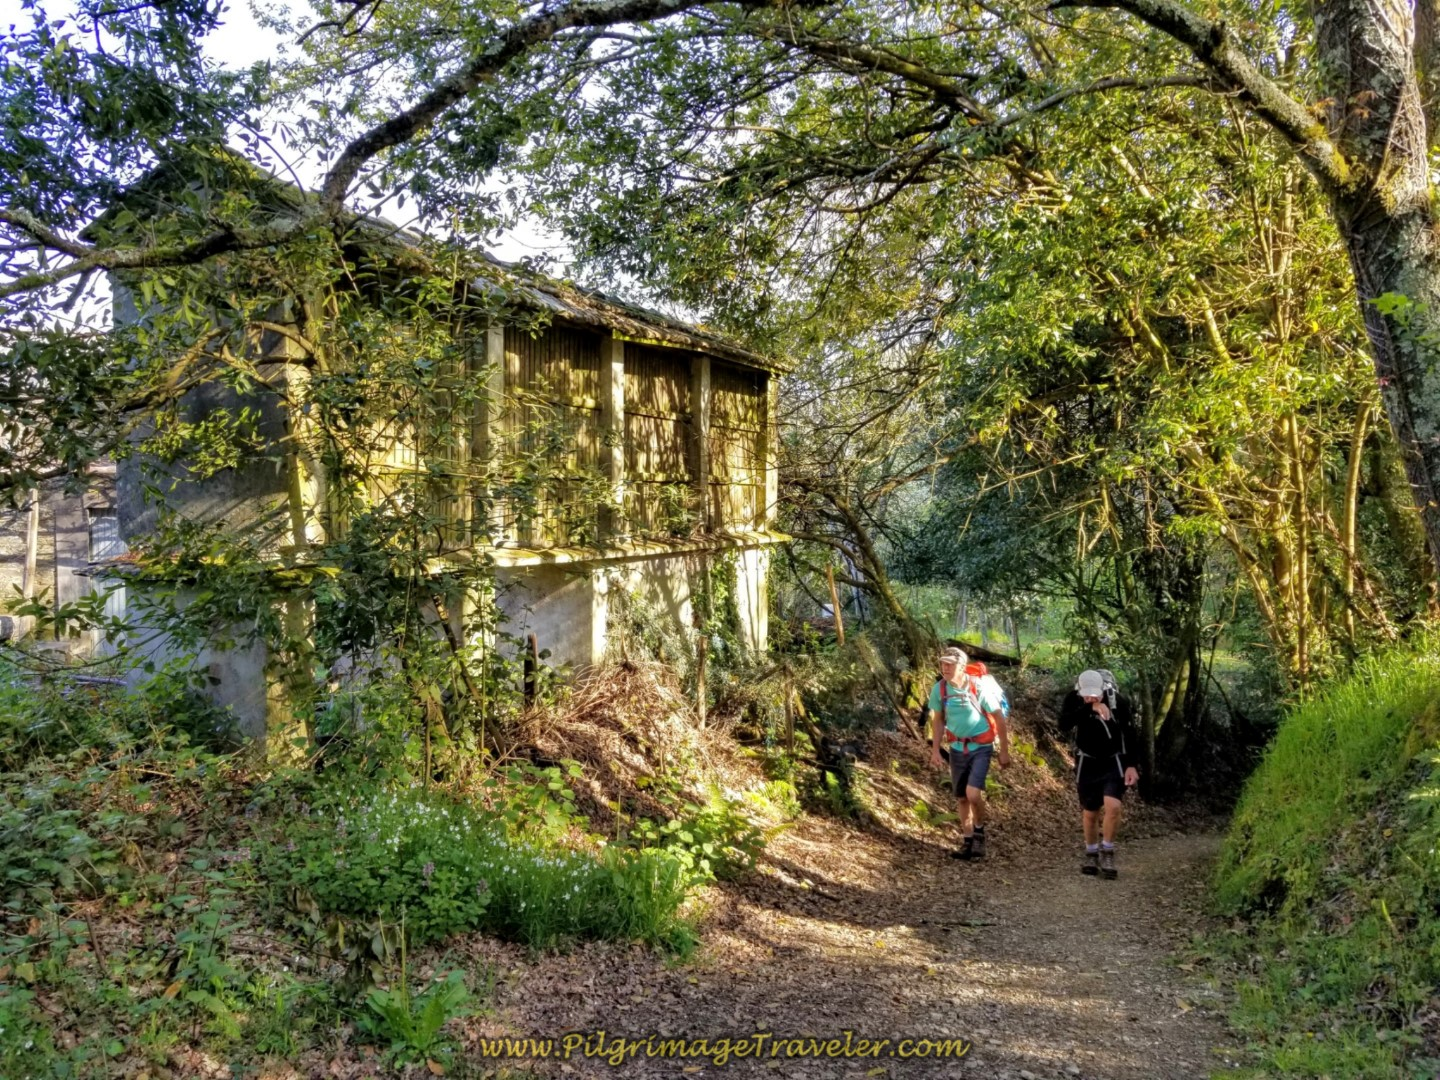 Rich and Rob Walking by Horreo in O Outeiro on day seven of the Camino Inglés